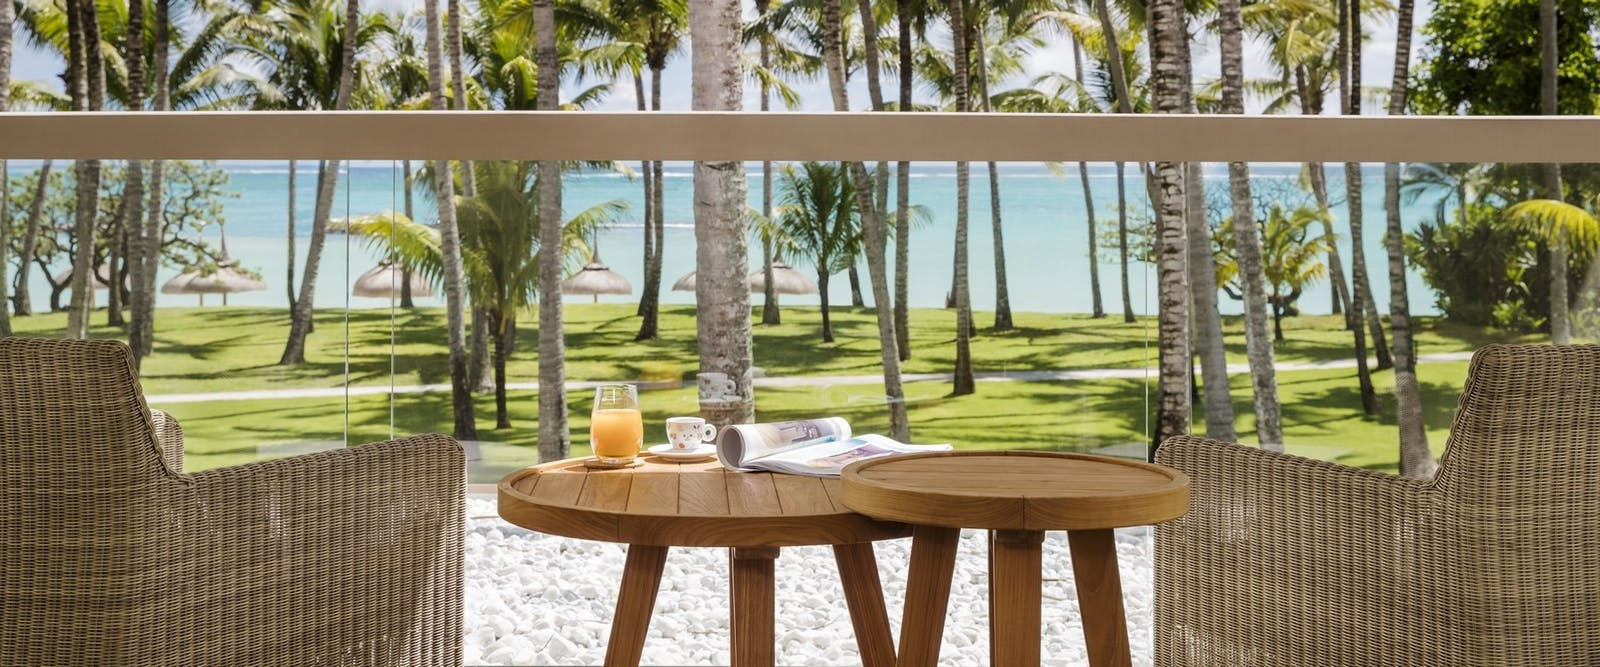 Ocean Room Balcony at One&Only Le Saint Geran, Mauritius